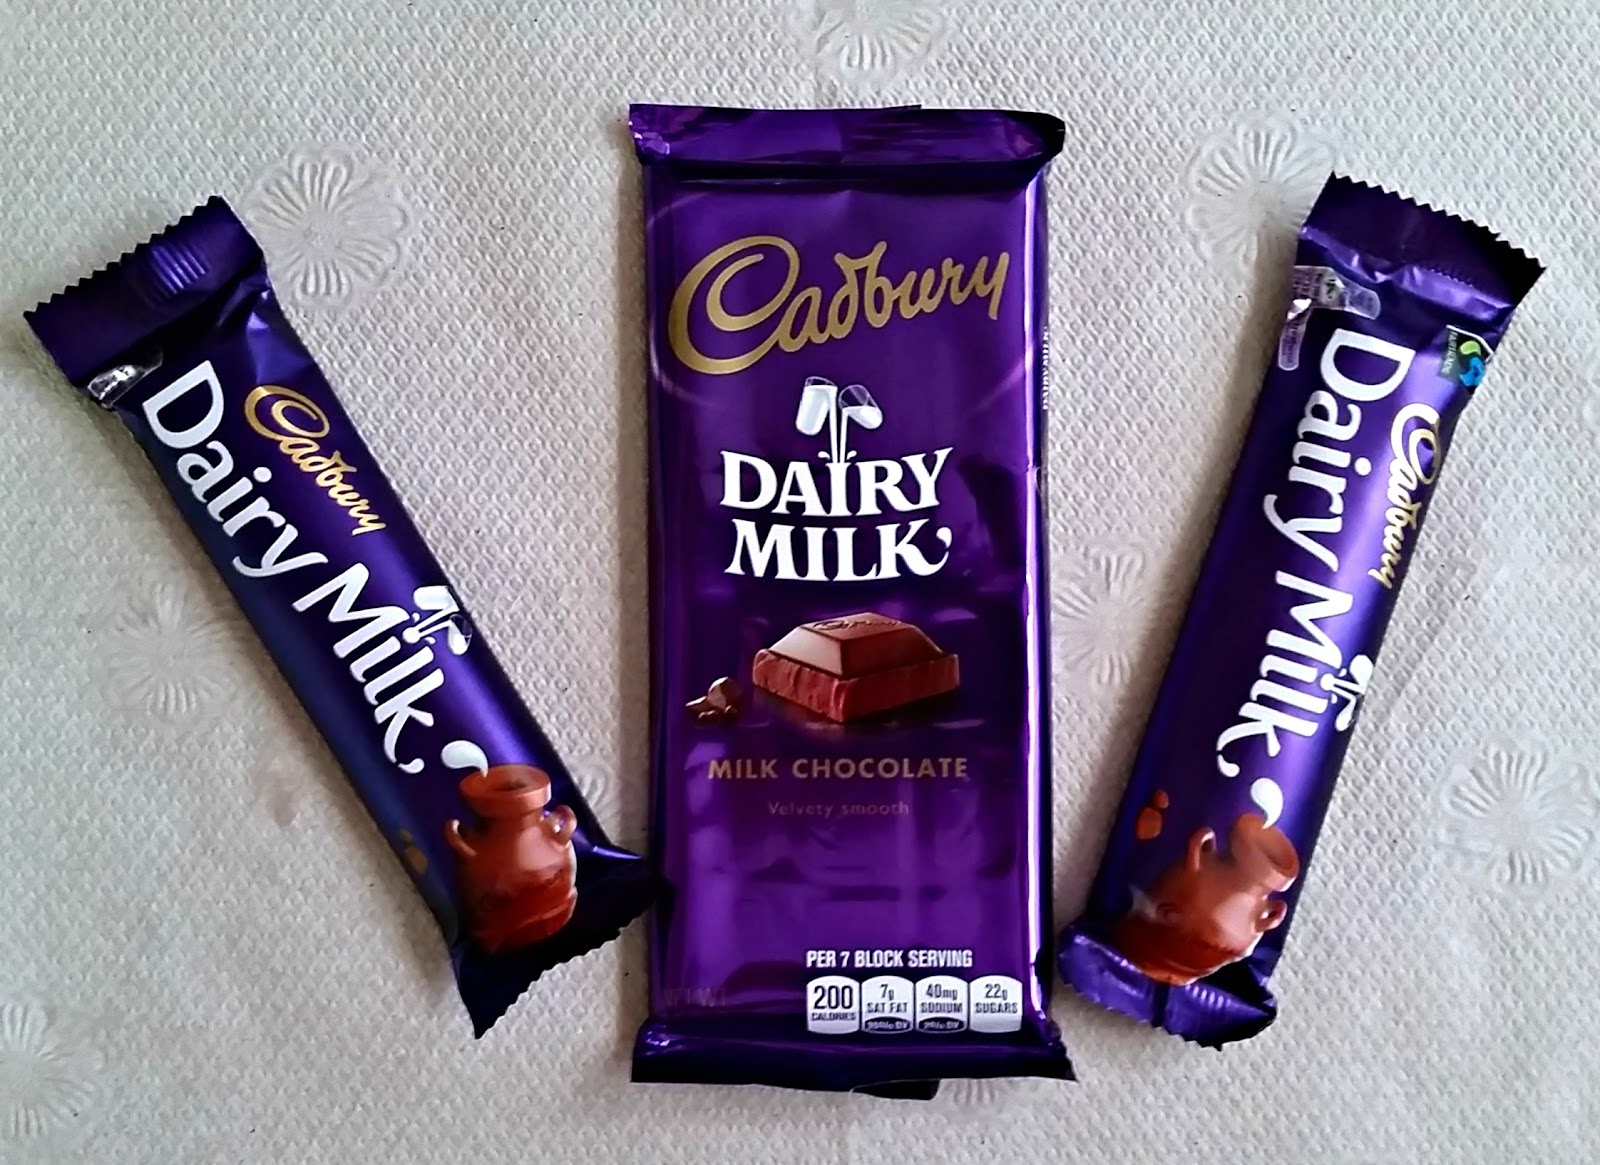 Discussing the marketing of Cadburys Dairy Milk